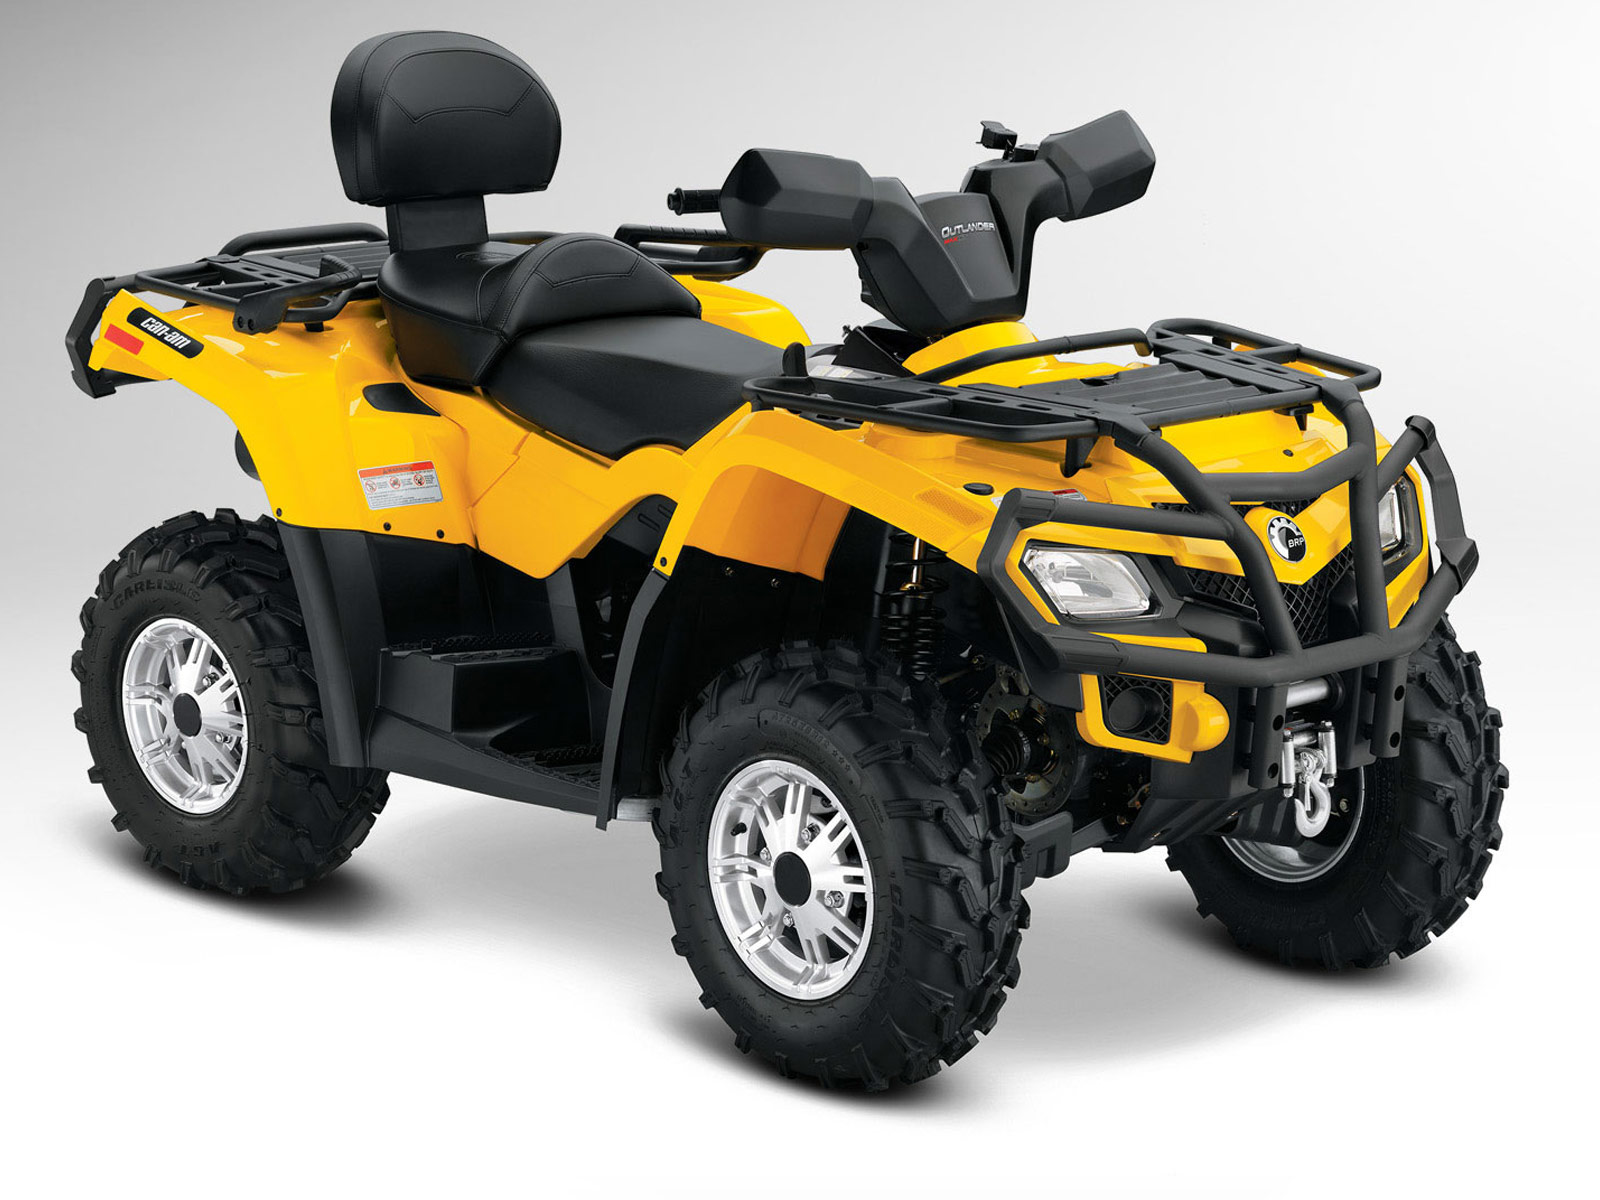 small resolution of max atv wiring diagram wiring librarycan am atv pictures 2012 outlander max400xt rh atv pictures blogspot